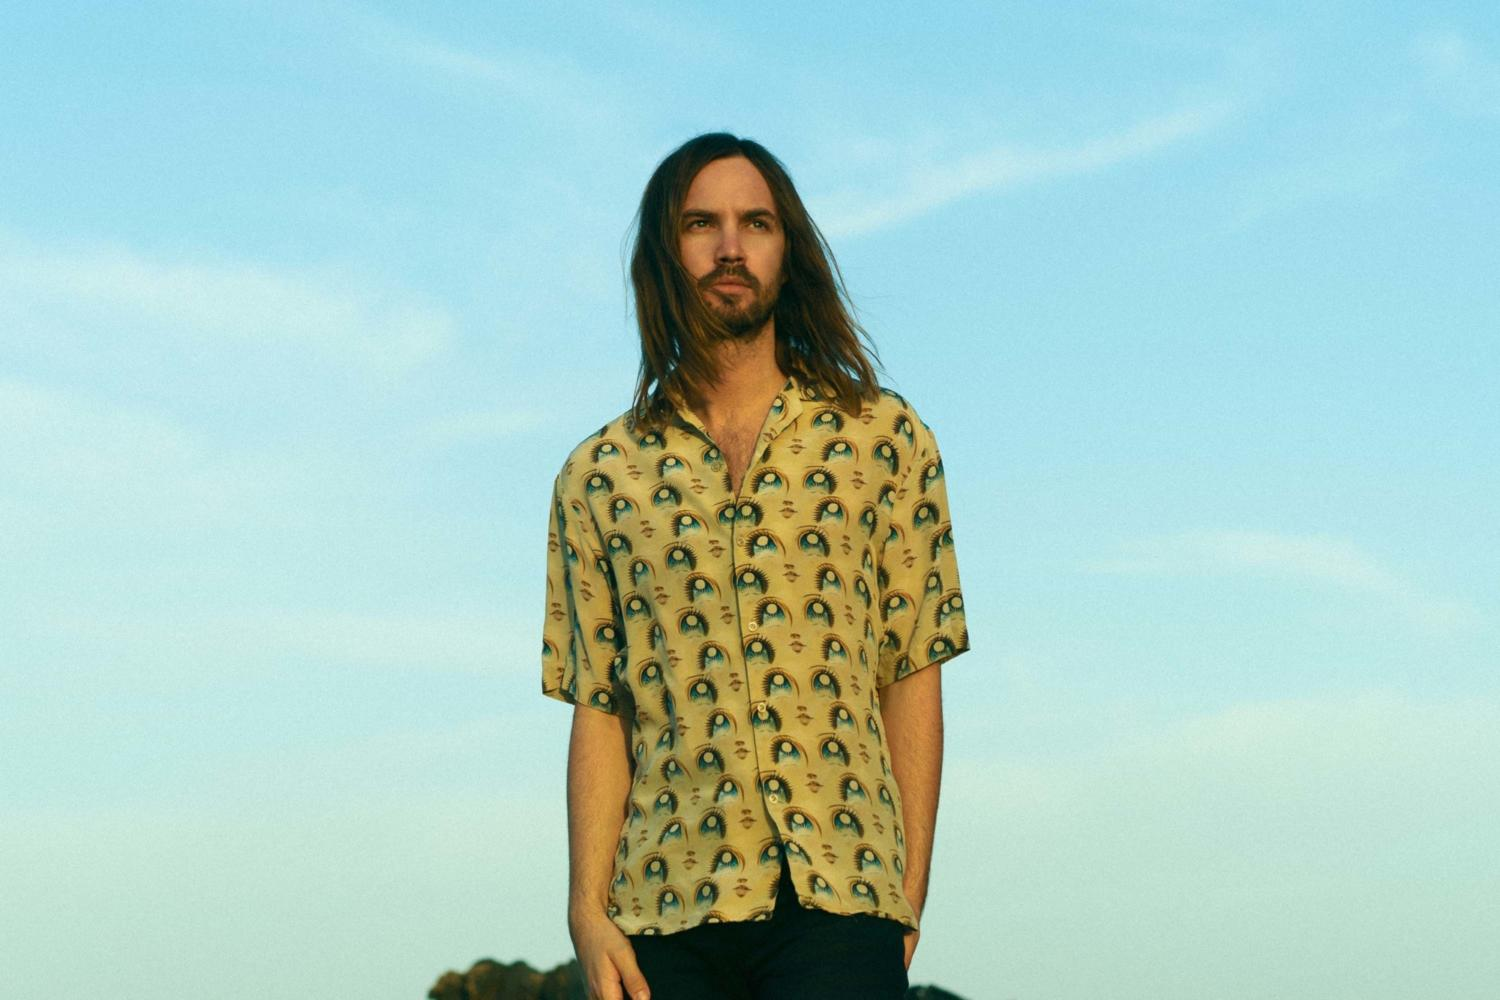 Tracks: Tame Impala, Lawrence Rothman ft Pale Waves, Mura Masa & more